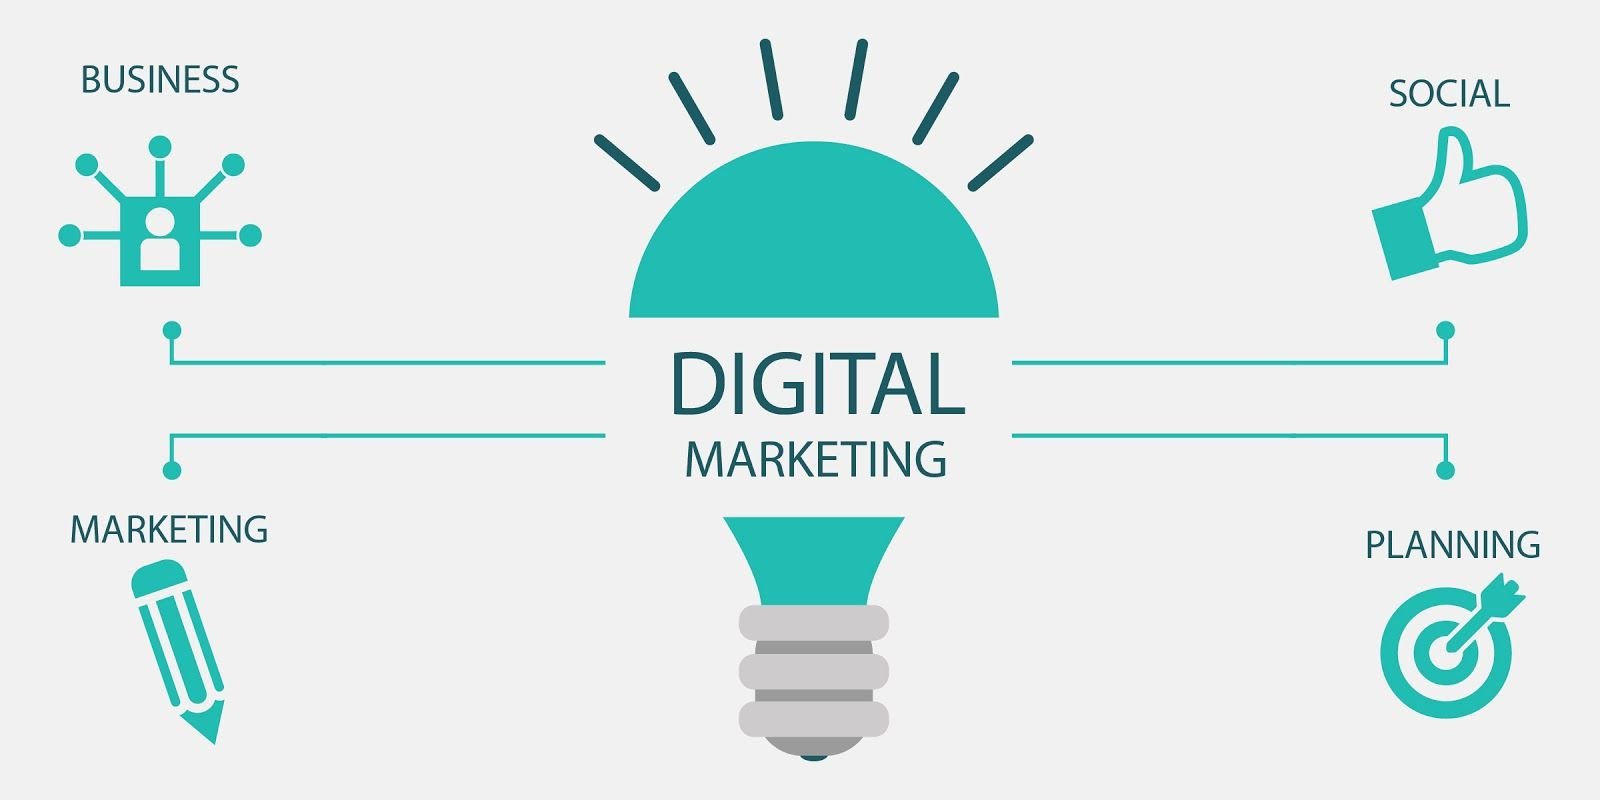 Digital Marketing Services: Top Five Tips To Grow Your Digital Marketing Agency